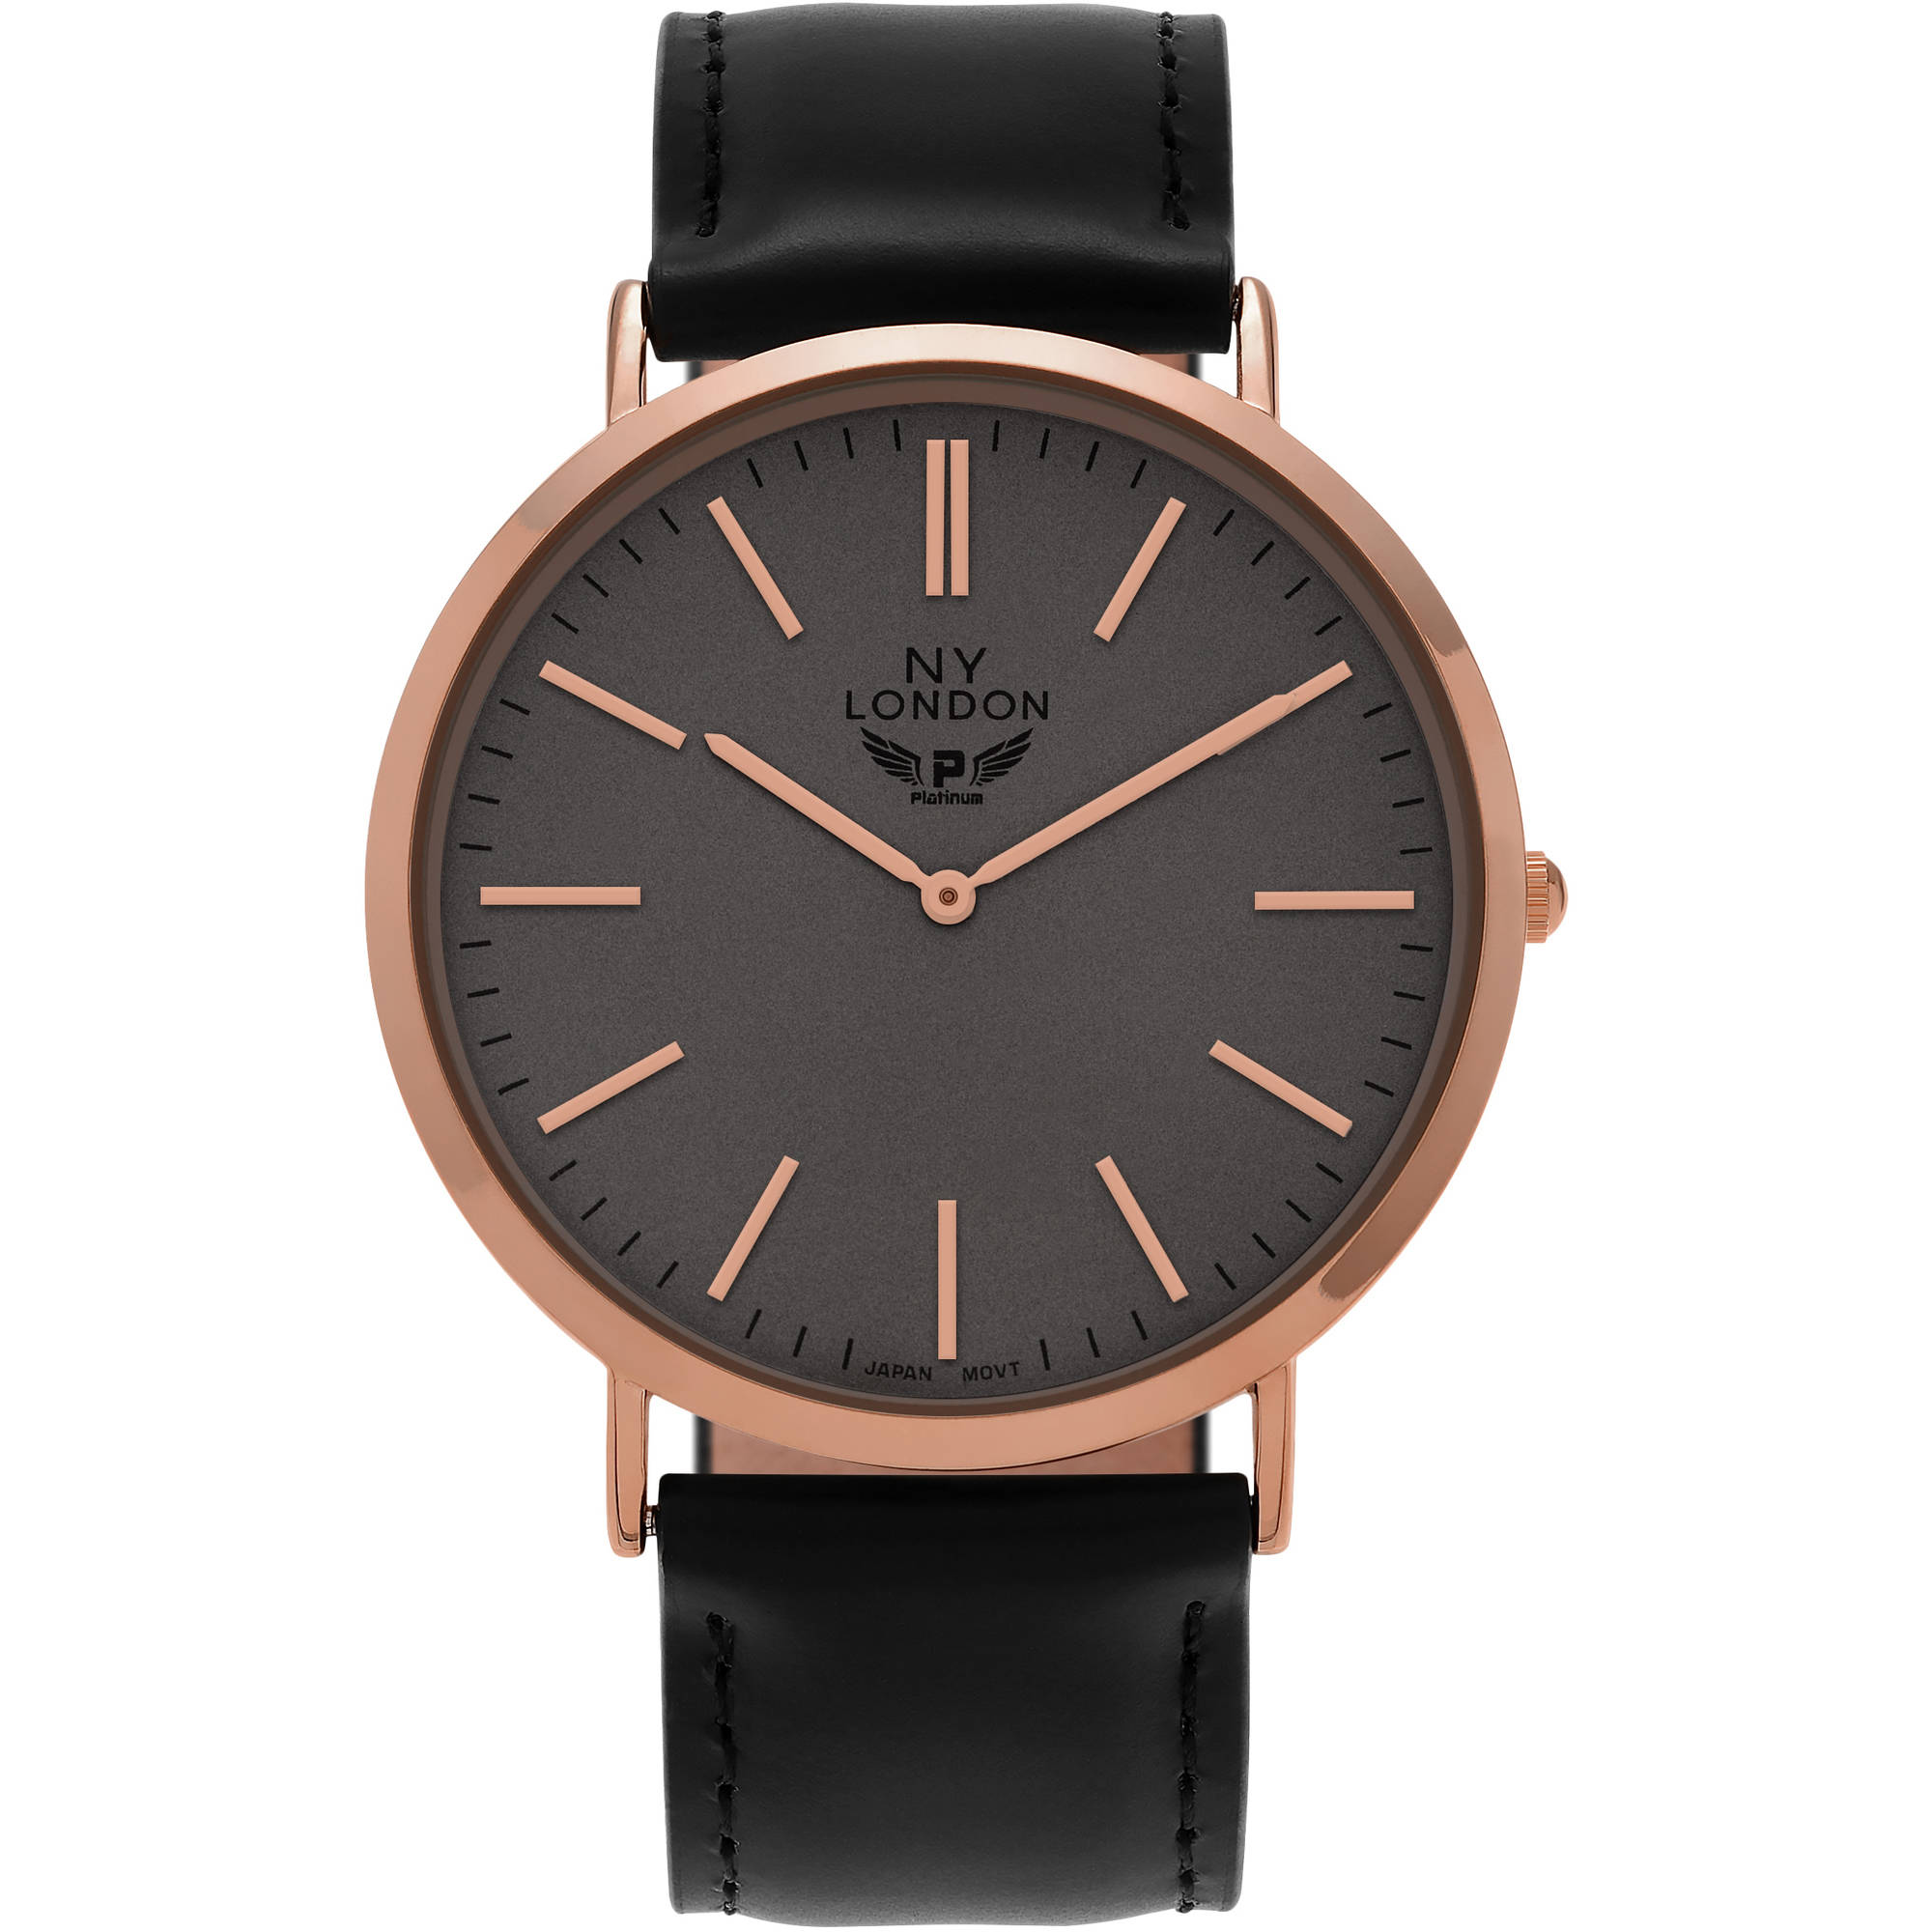 Image of Aktion Men's Faux Leather Round Face Tachymeter Strap Fashion Watch, Black/Rose Gold